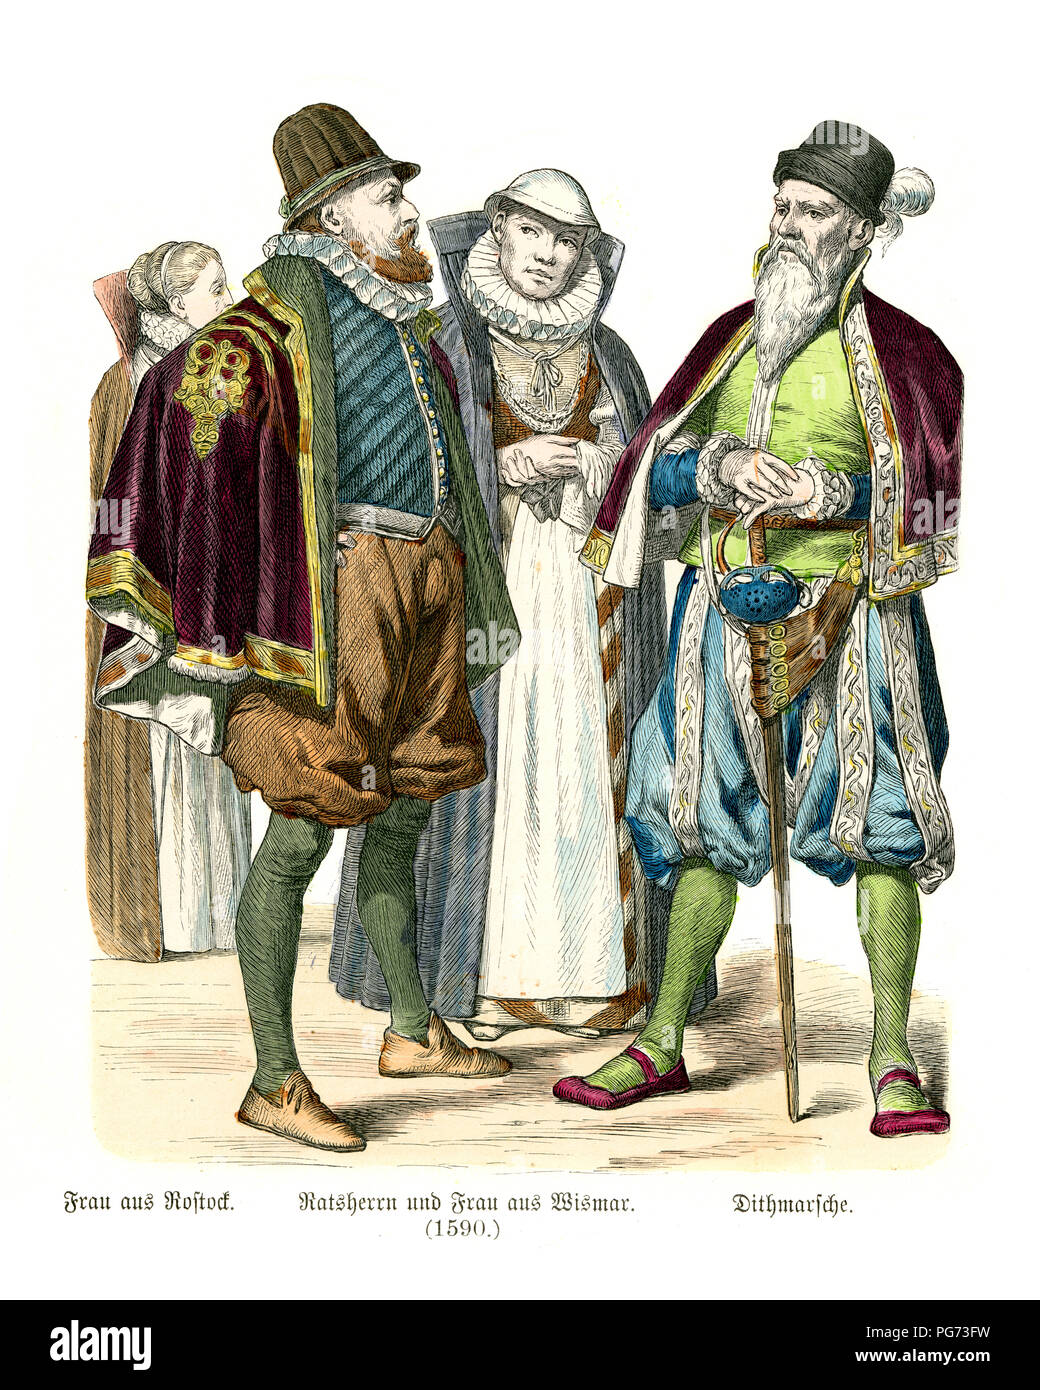 Fashion of  late 16th Century Germany.  Woman of Rostock, Senator and wife of Wismar and man of Dithmarschen - Stock Image